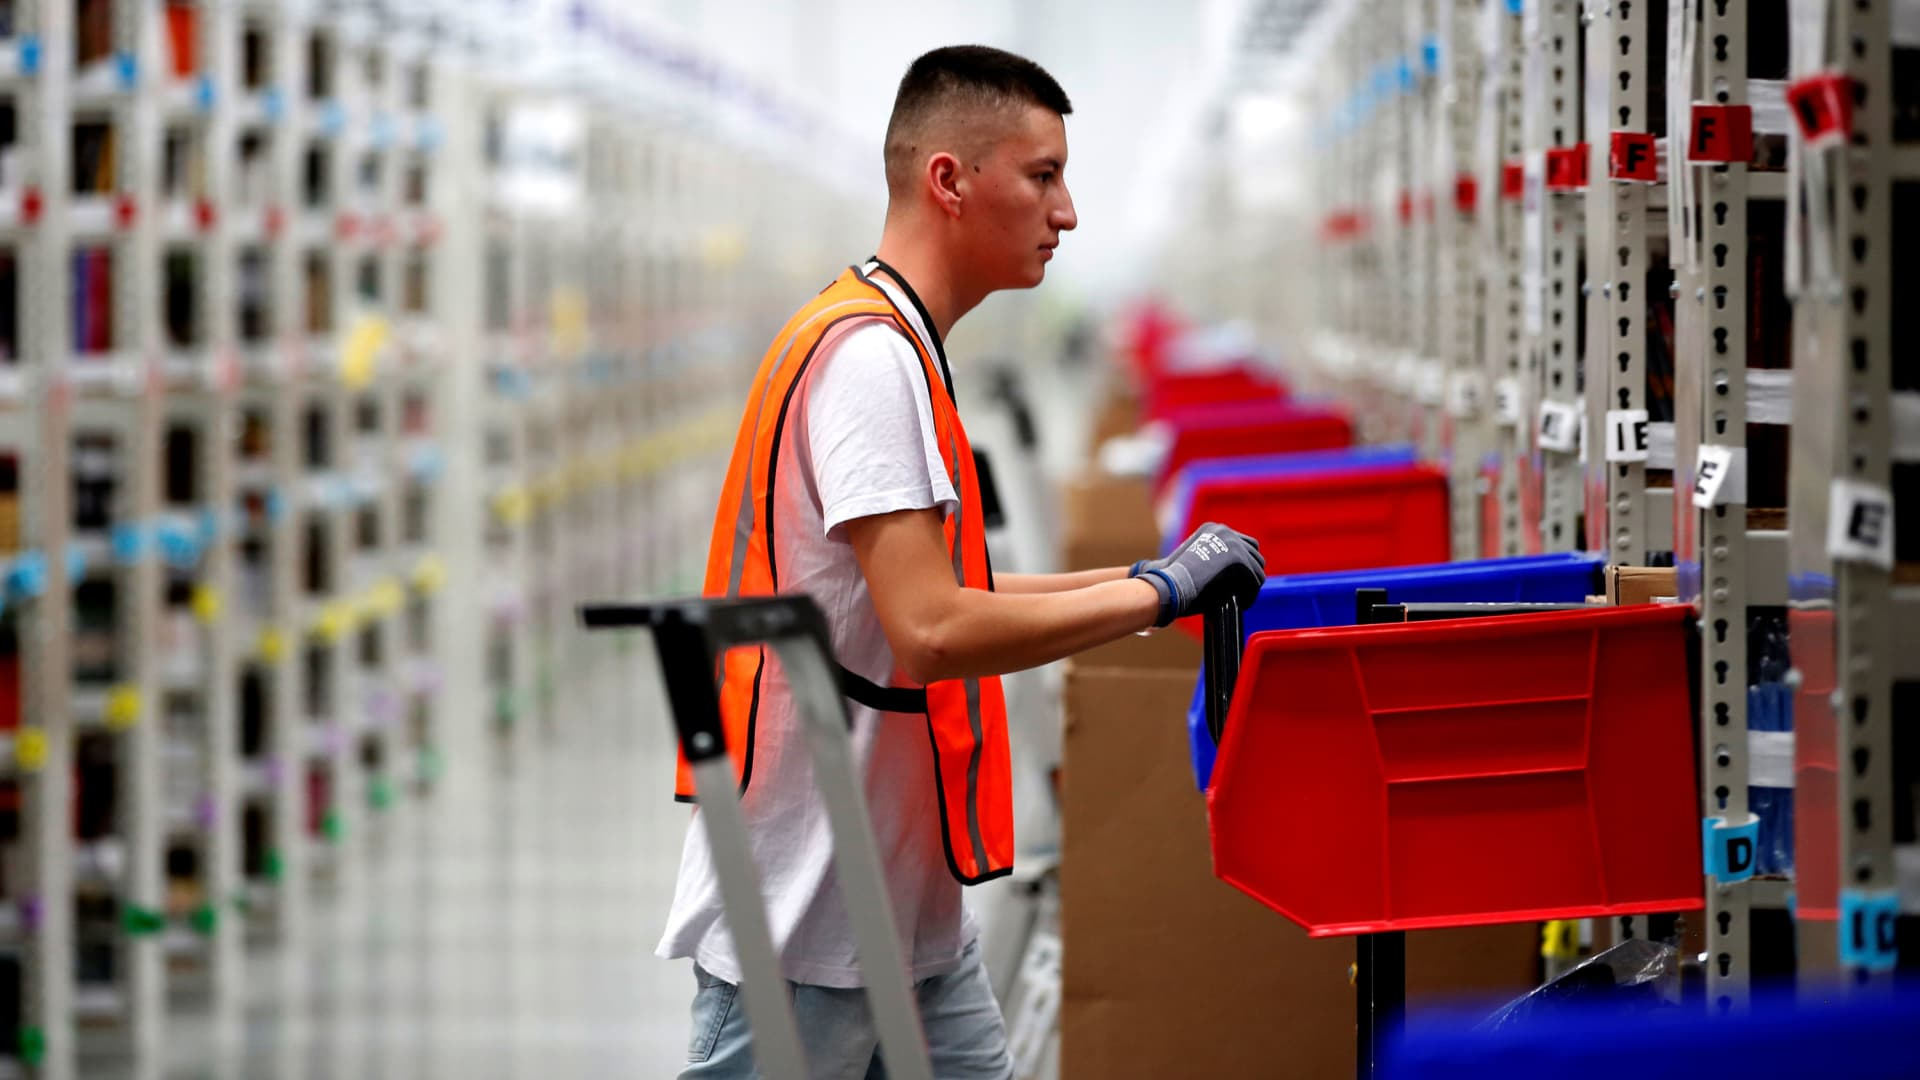 An employee looks for items in one of the corridors at an Amazon warehouse.